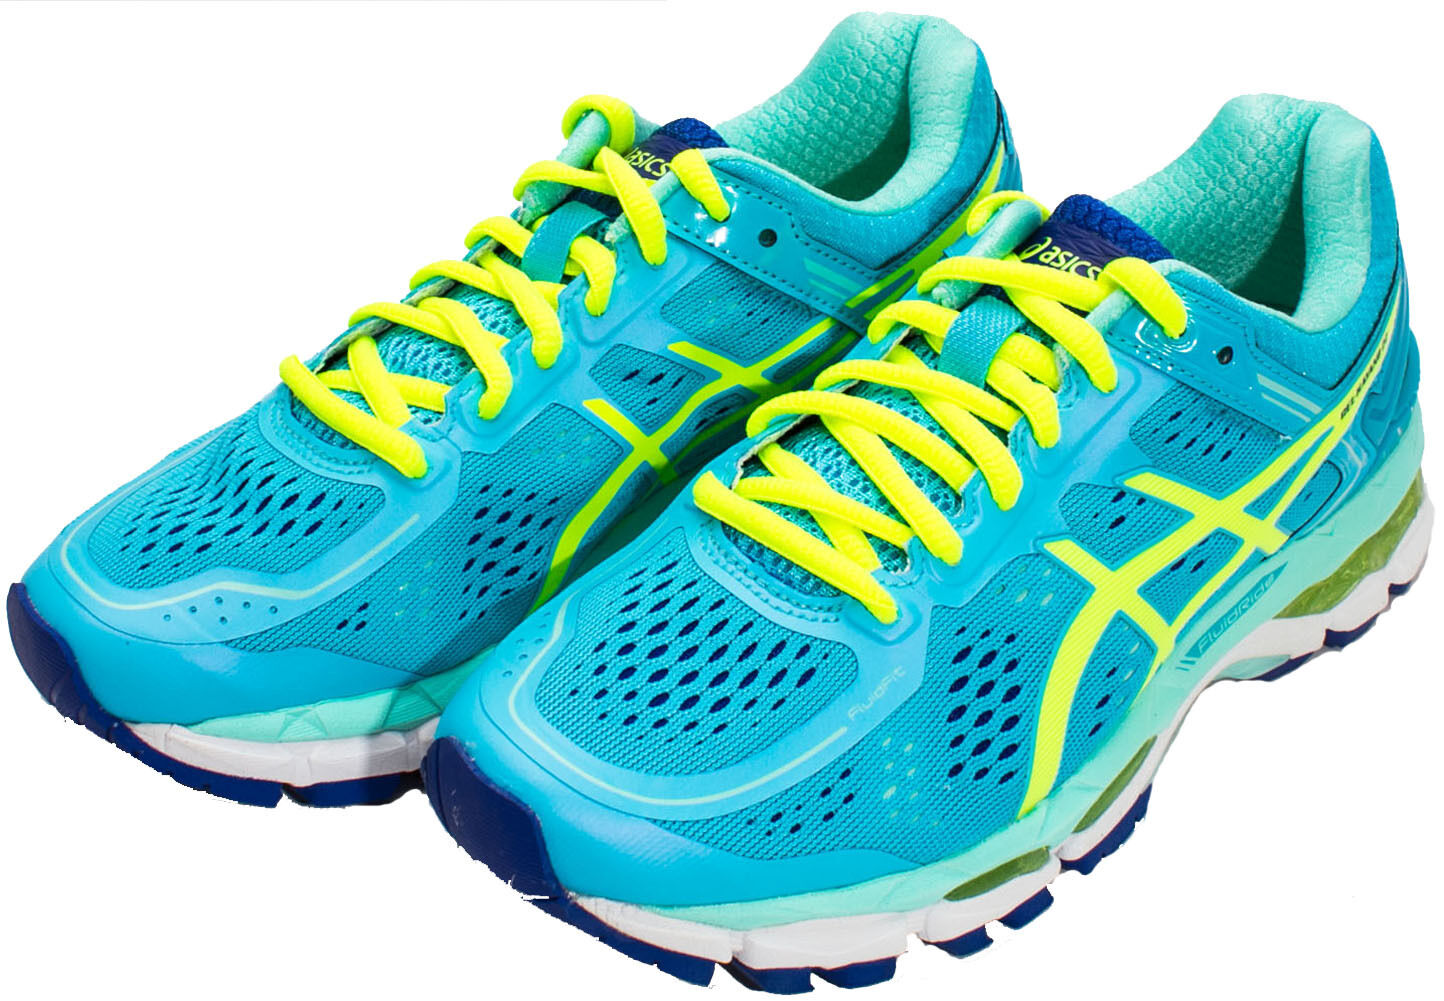 Asics Womens Gel-Kayano 22 Running Shoes Ice Blue T597N.4407 Sz 6 The most popular shoes for men and women